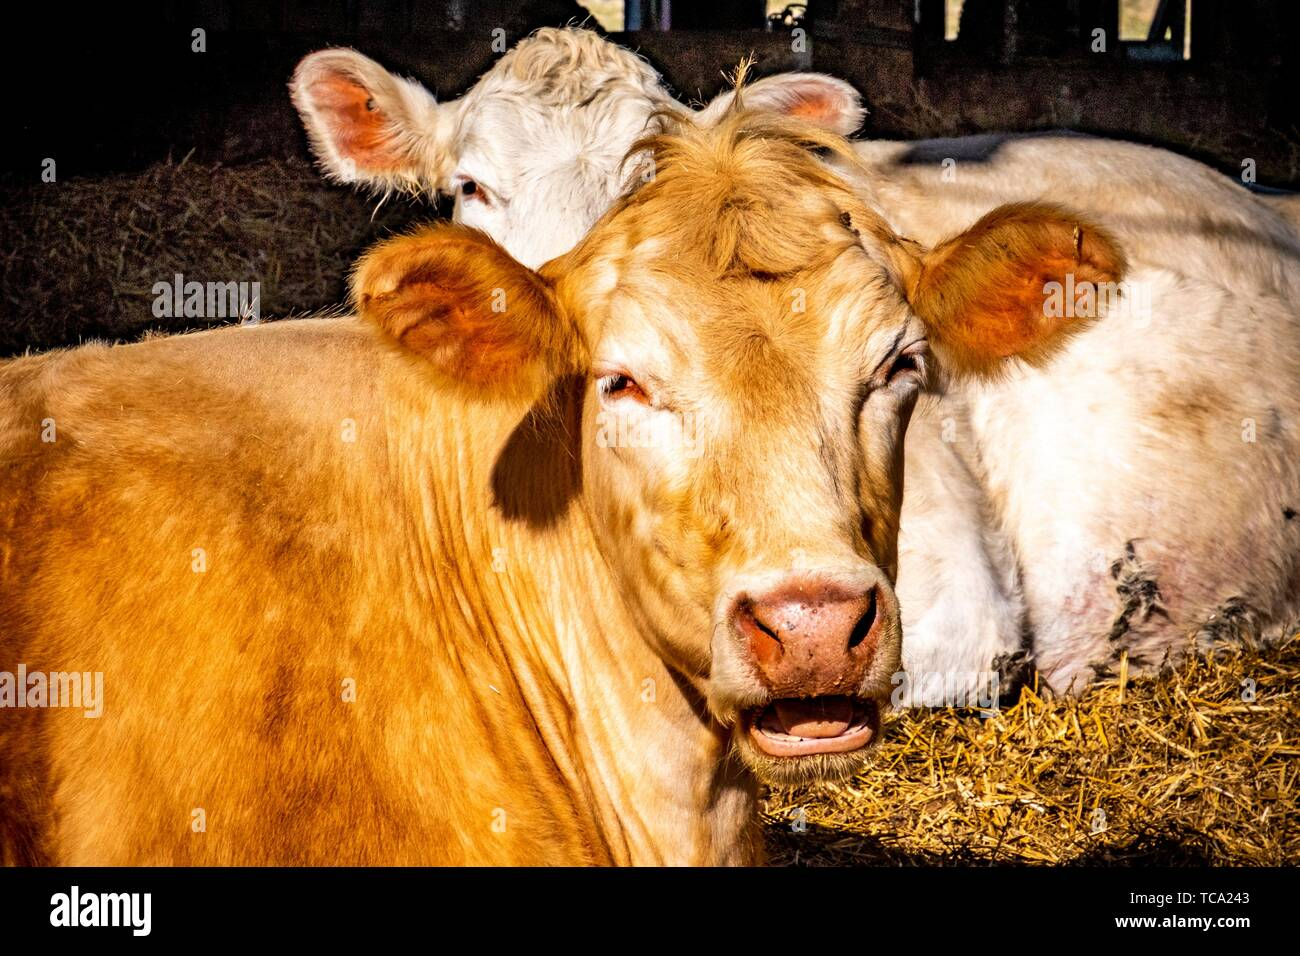 Cows resting in a barn in Sweden. - Stock Image